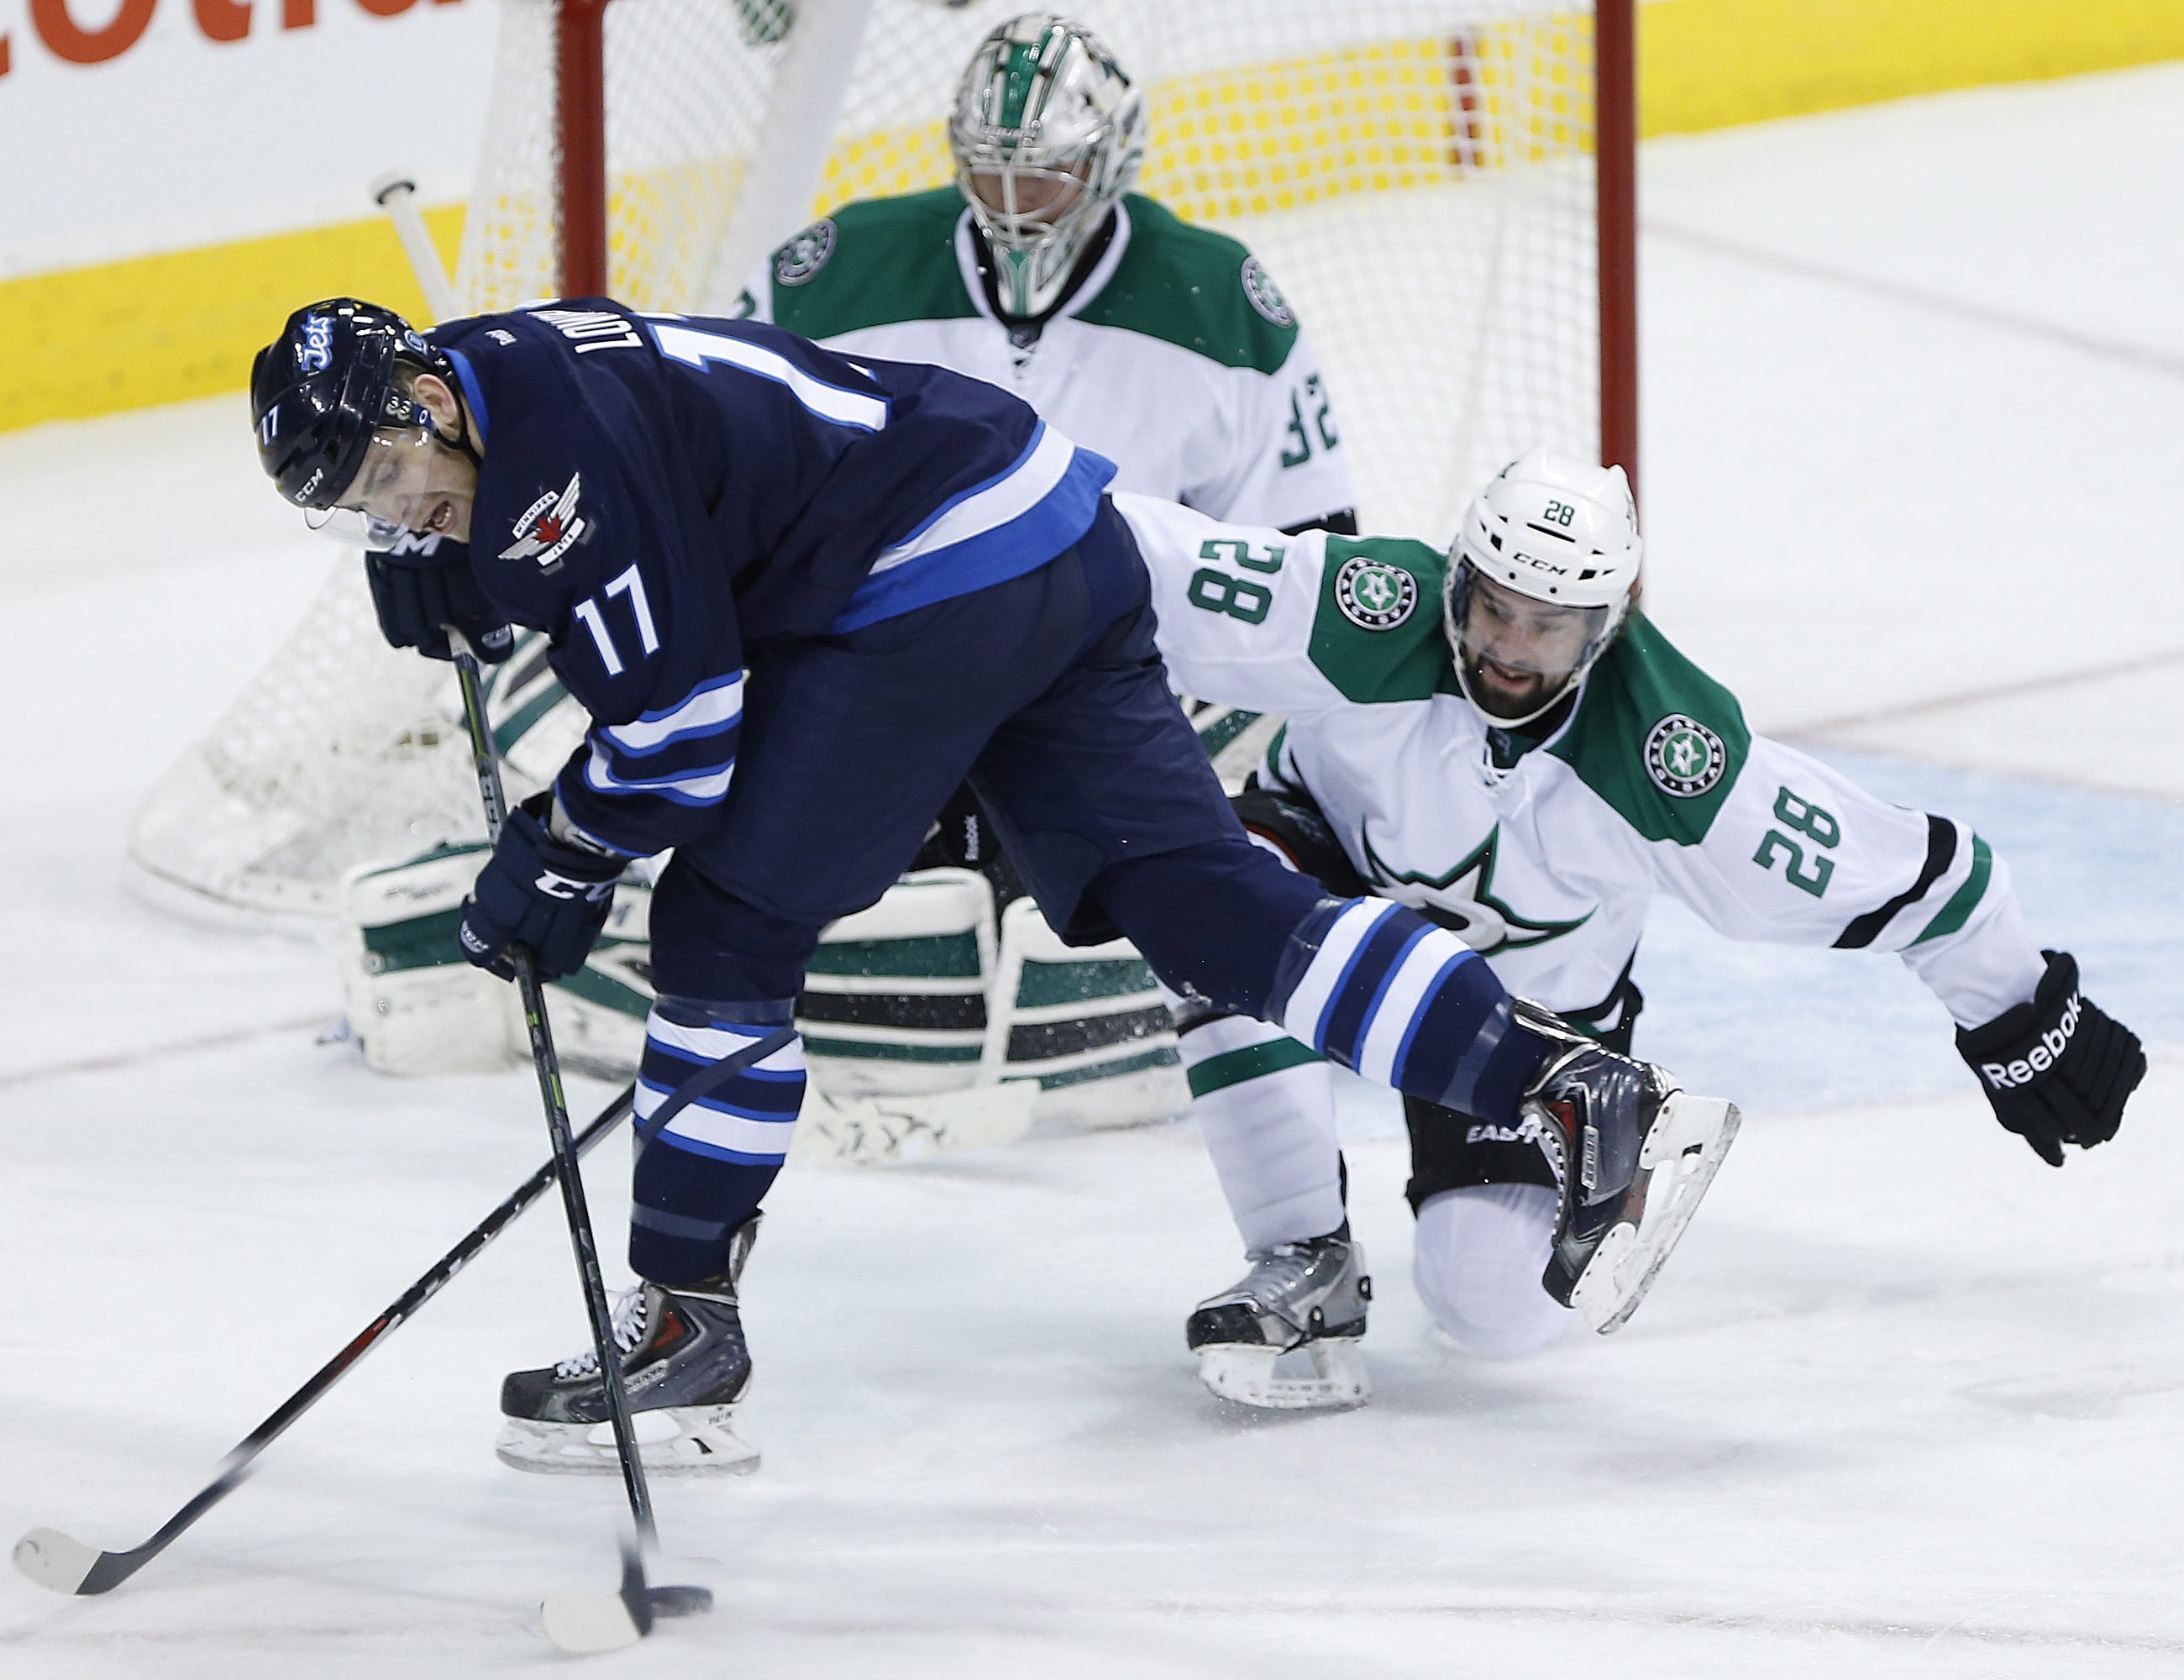 Winnipeg Jets' Adam Lowry (17) can't get the shot away on Dallas Stars goaltender Kari Lehtonen (32) as David Schlemko (28) defends during the third period of an NHL hockey game in Winnipeg, Manitoba, on Saturday, Jan. 31, 2015. (AP Photo/The Canadian Press, John Woods)